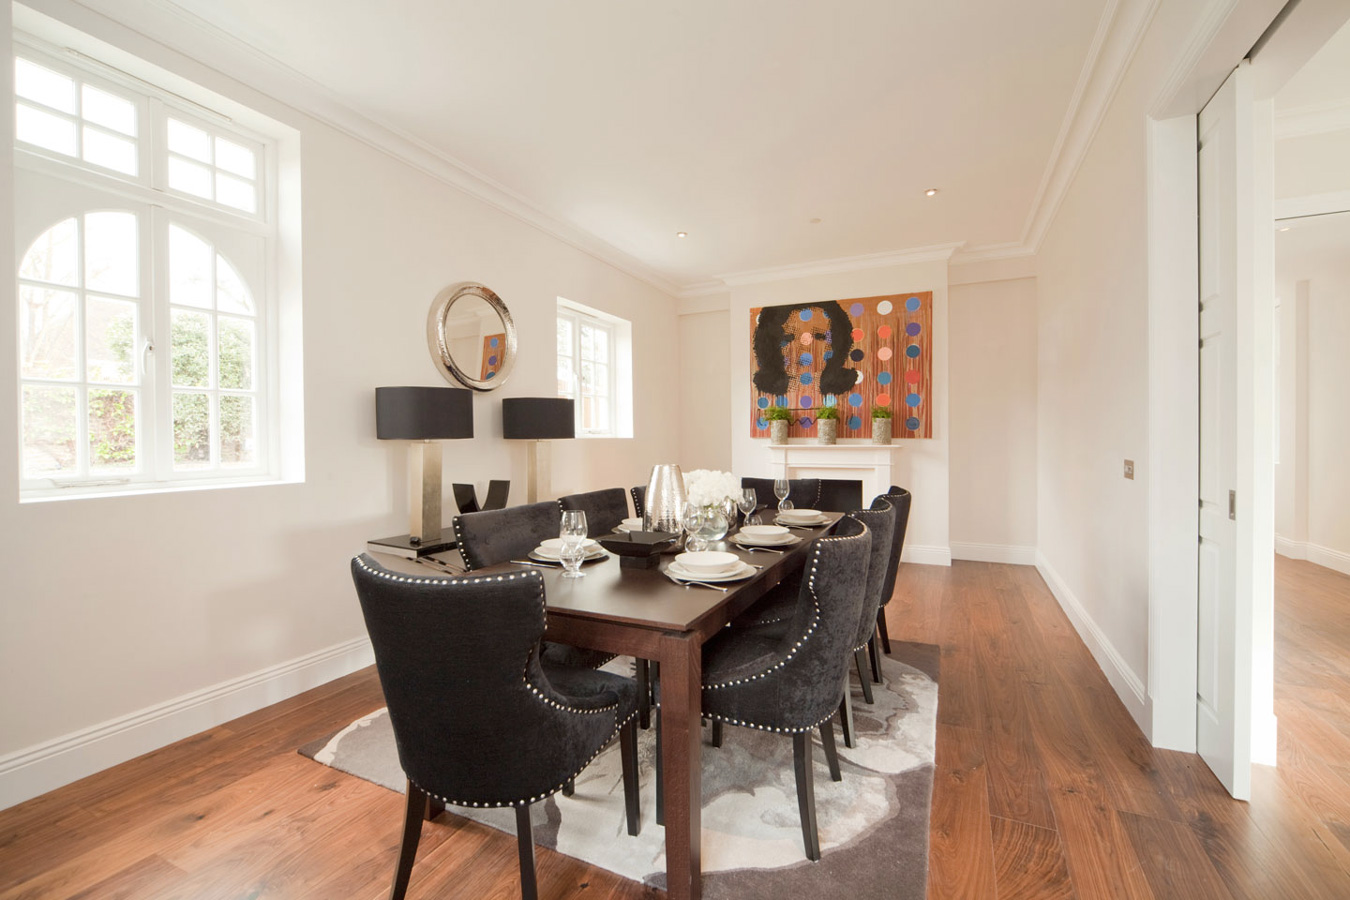 Design Box London - Interior Design - Richmond Park Home, TW10 - Dining Room